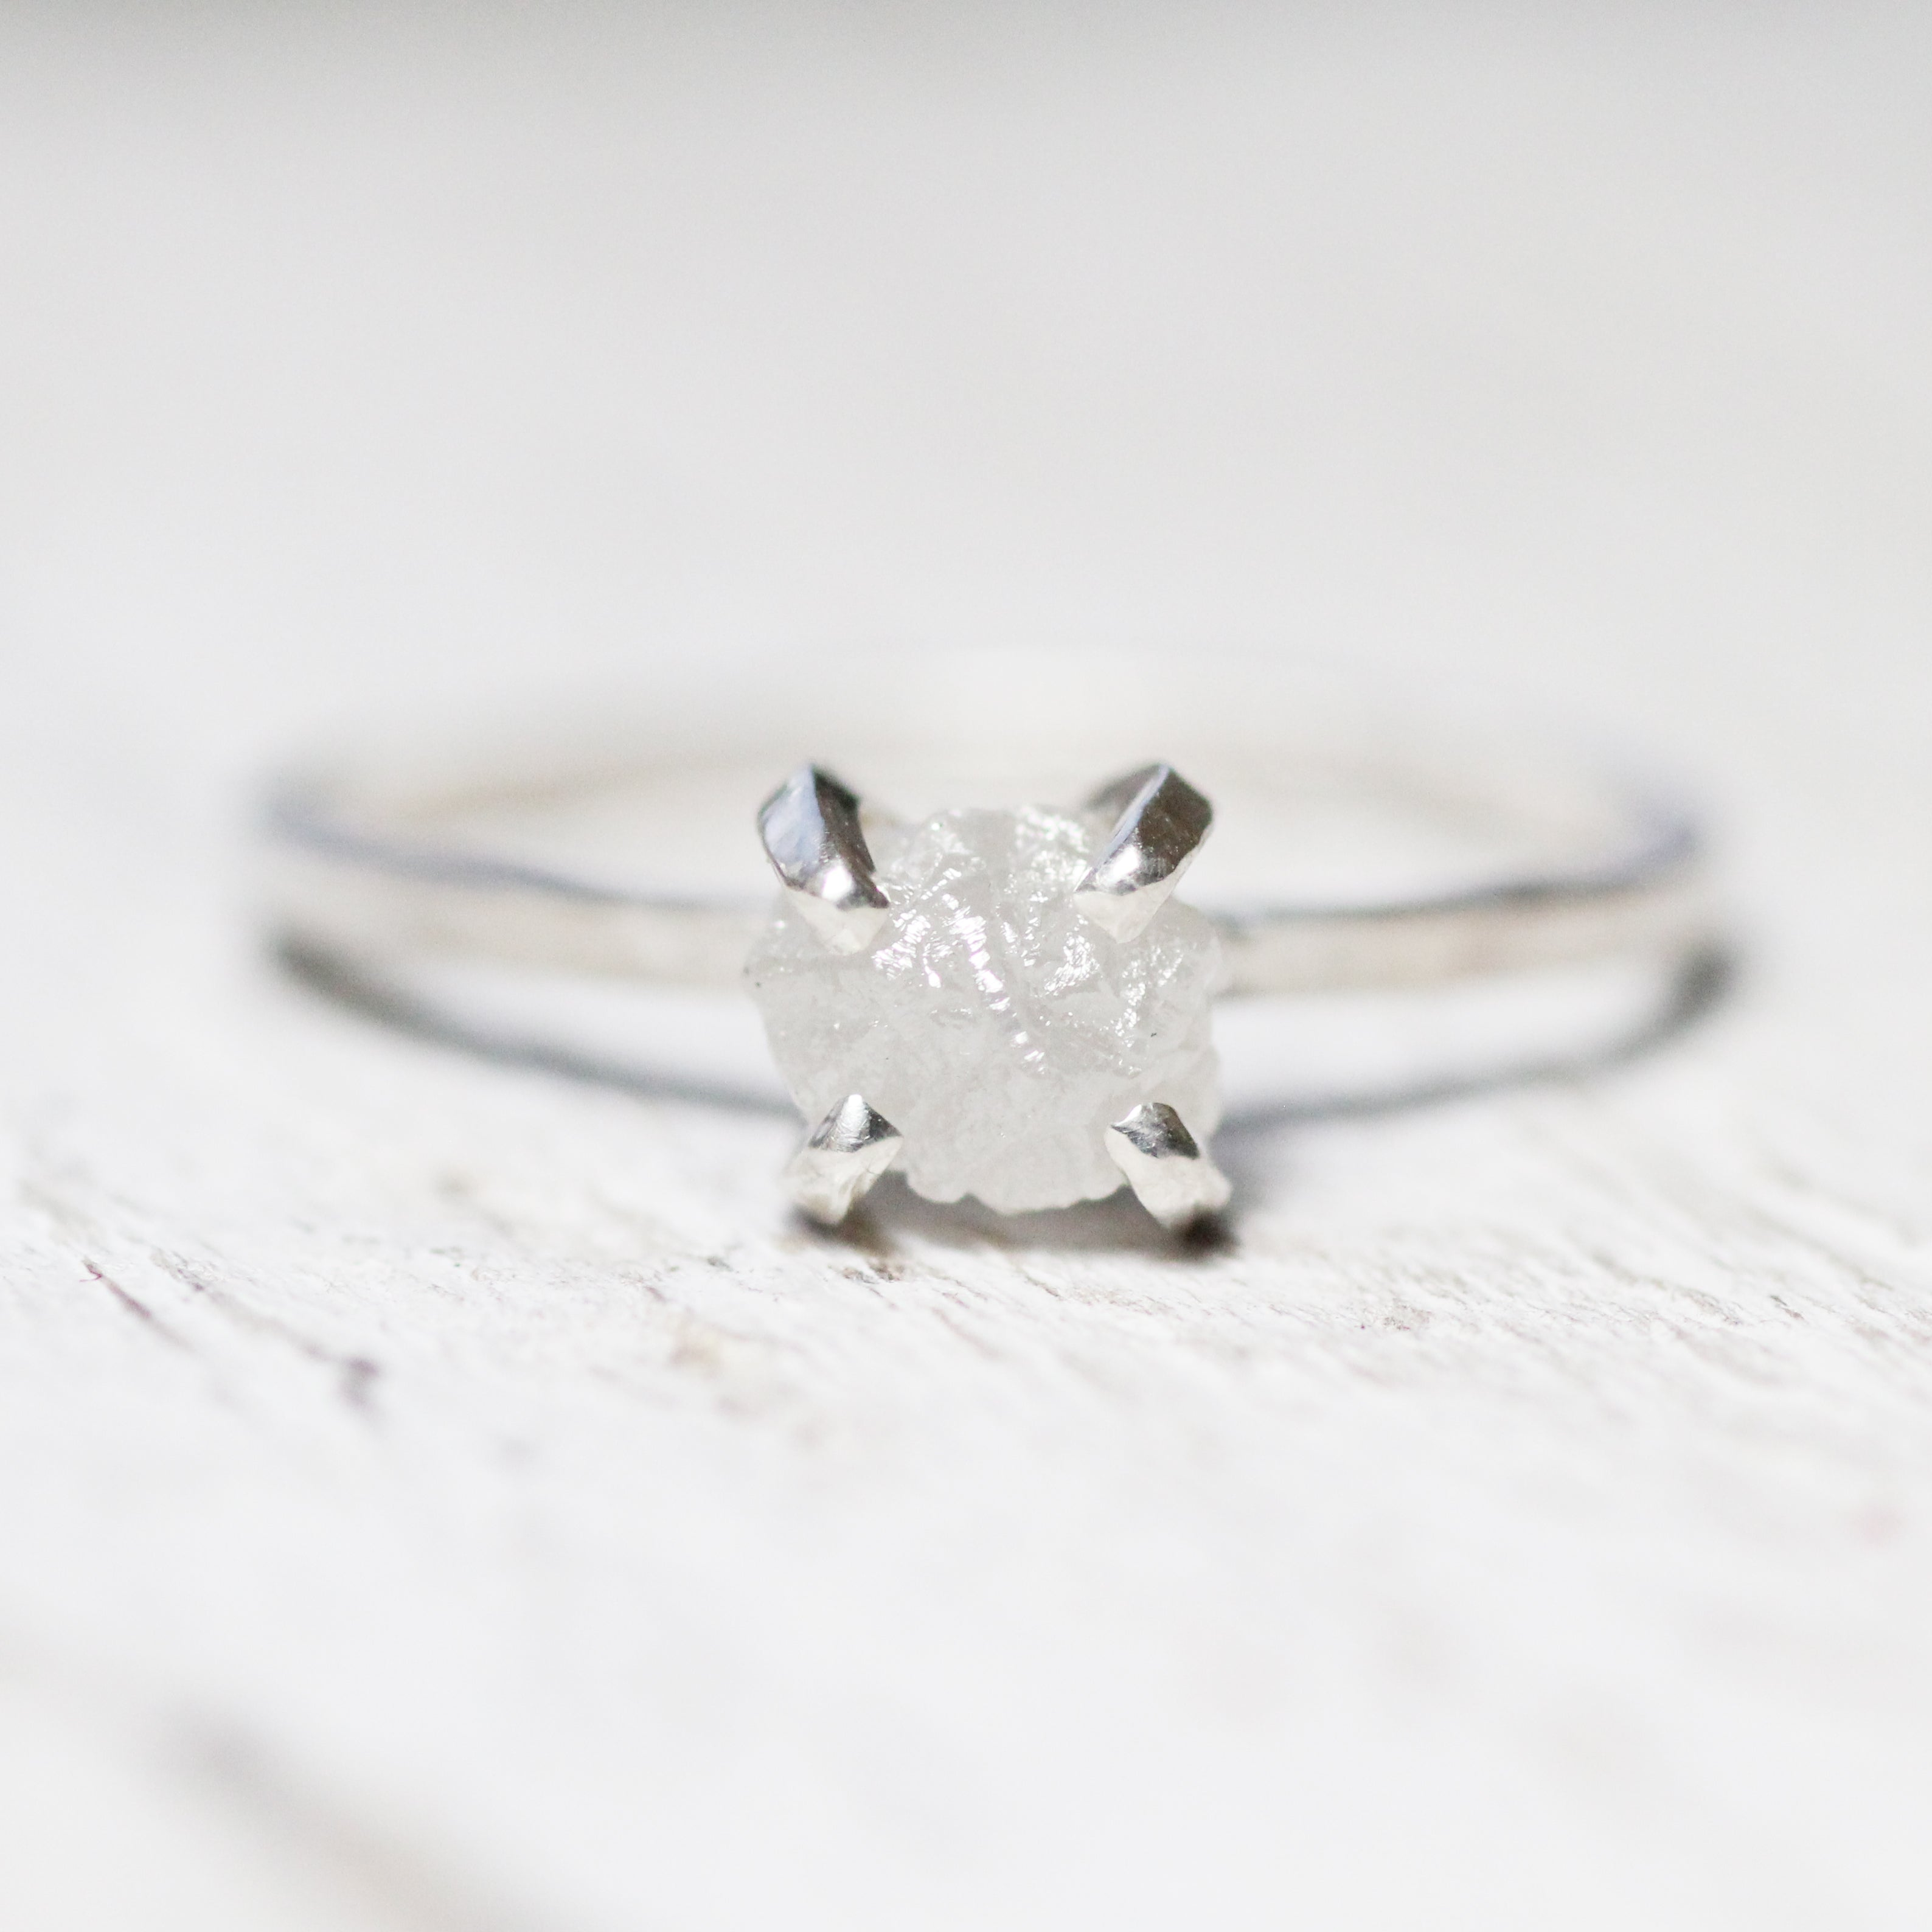 Rough Diamond Solitaire Ring Gold Sterling Ethically Sourced